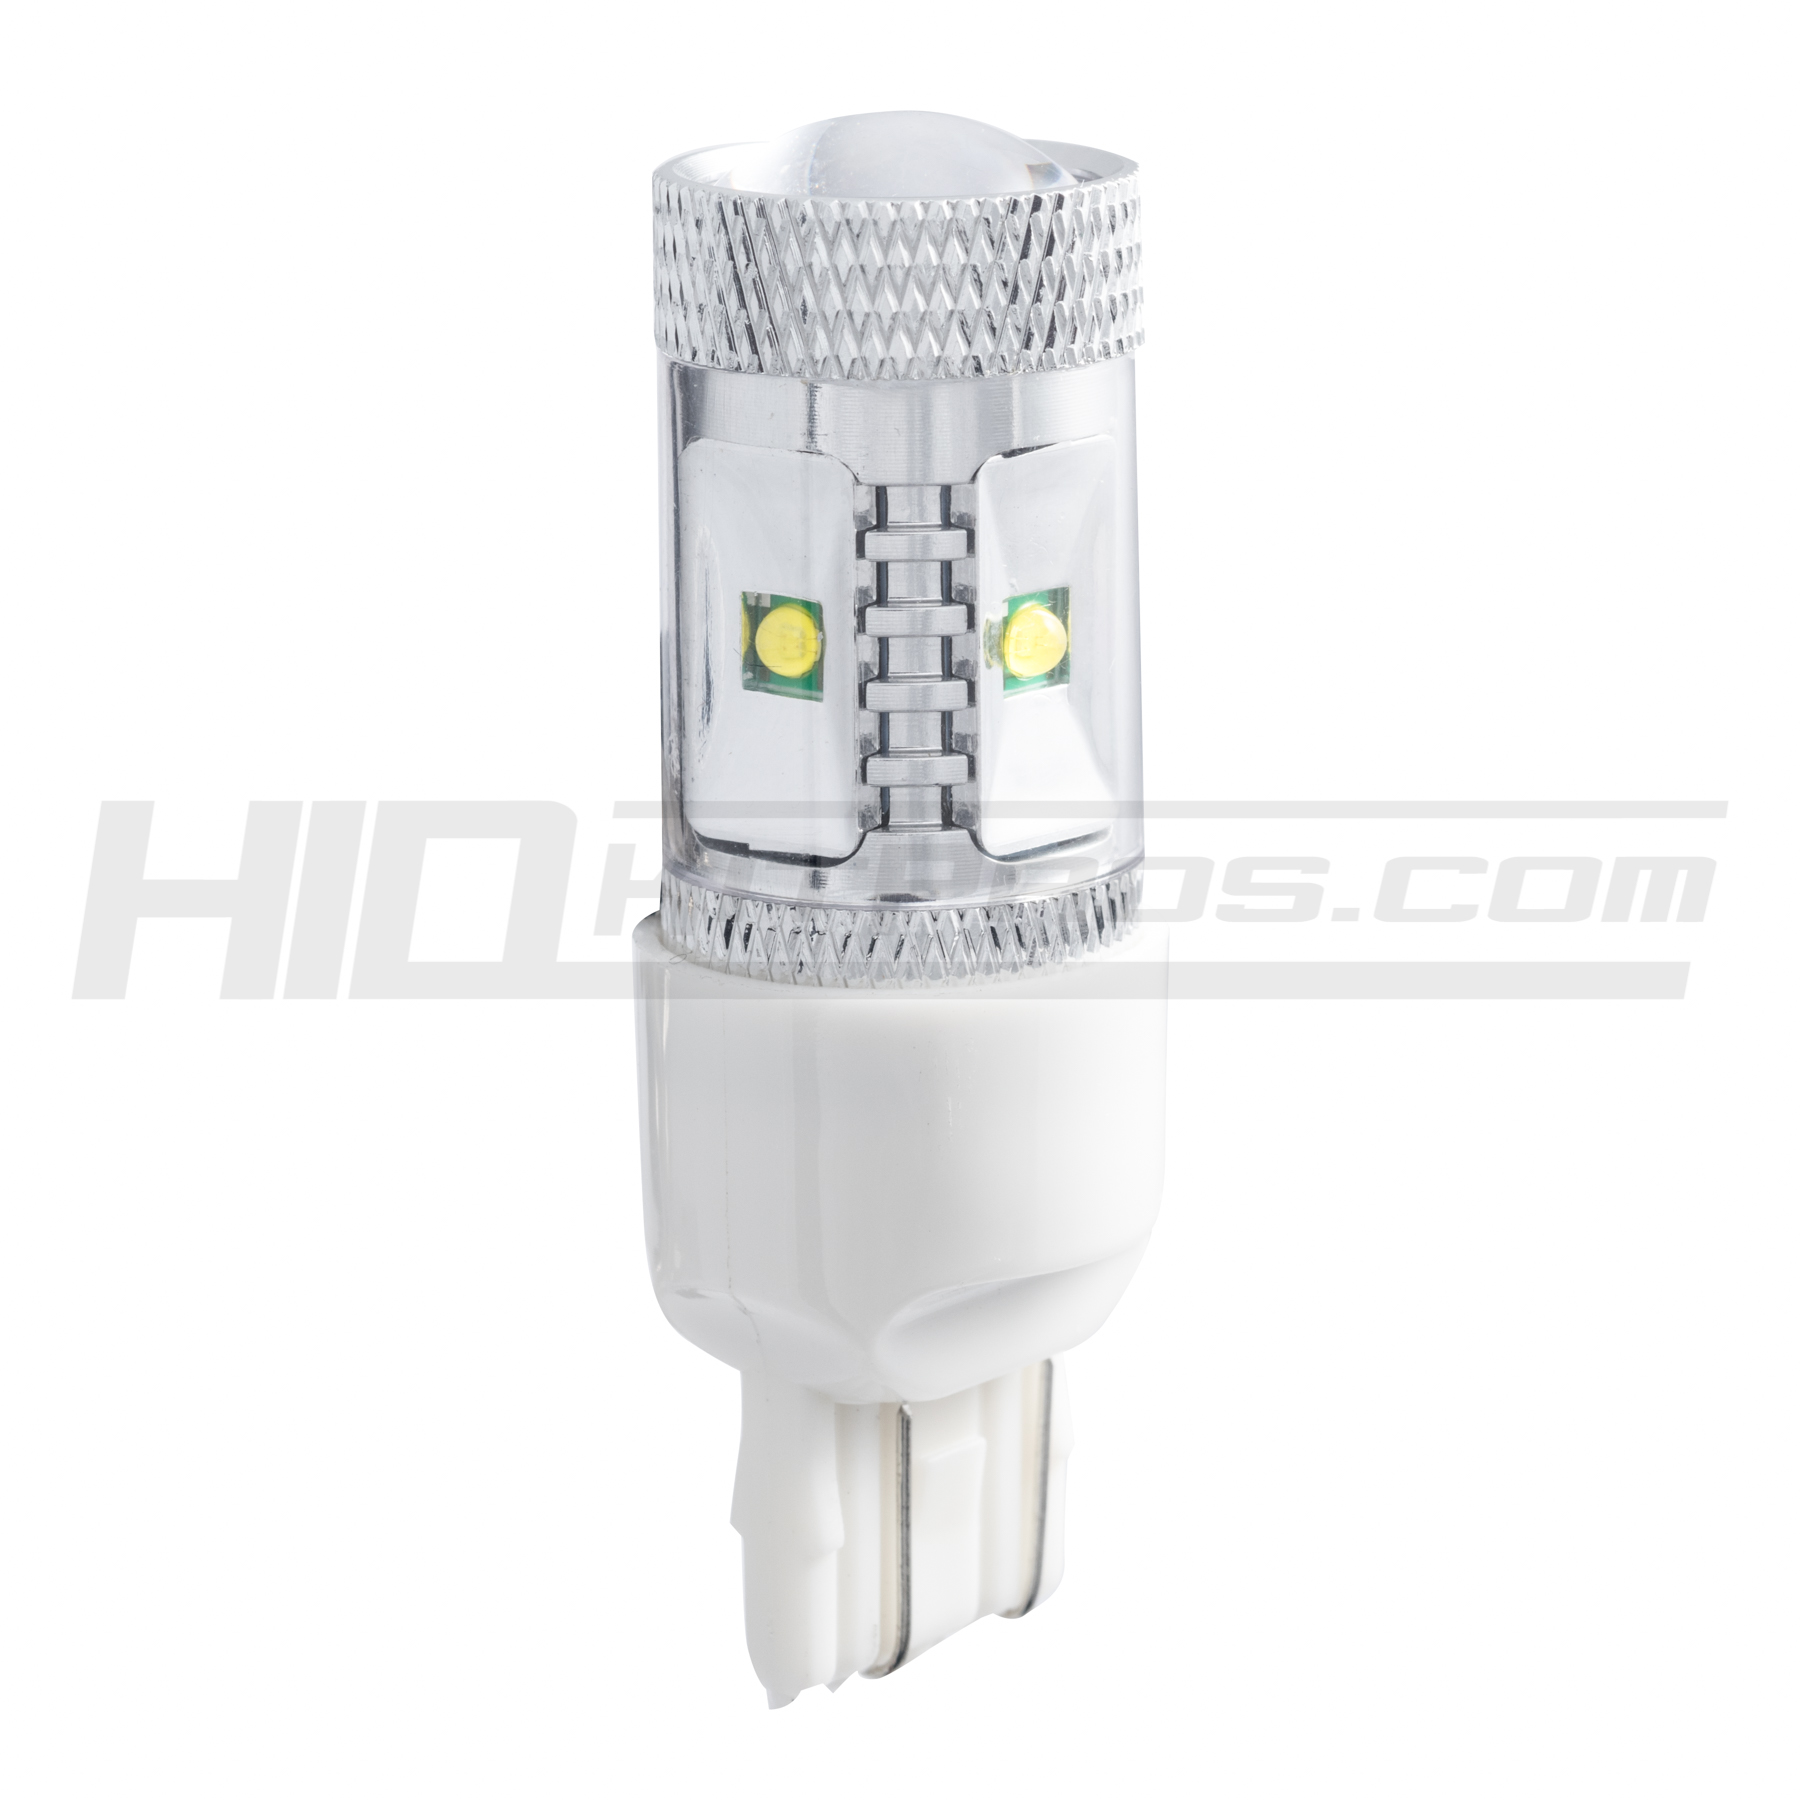 T20 7443 High Power 30W CREE LED Bulb?fit=1800%2C1800&ssl=1 2003 2019 mitsubishi outlander high power led reverse lights